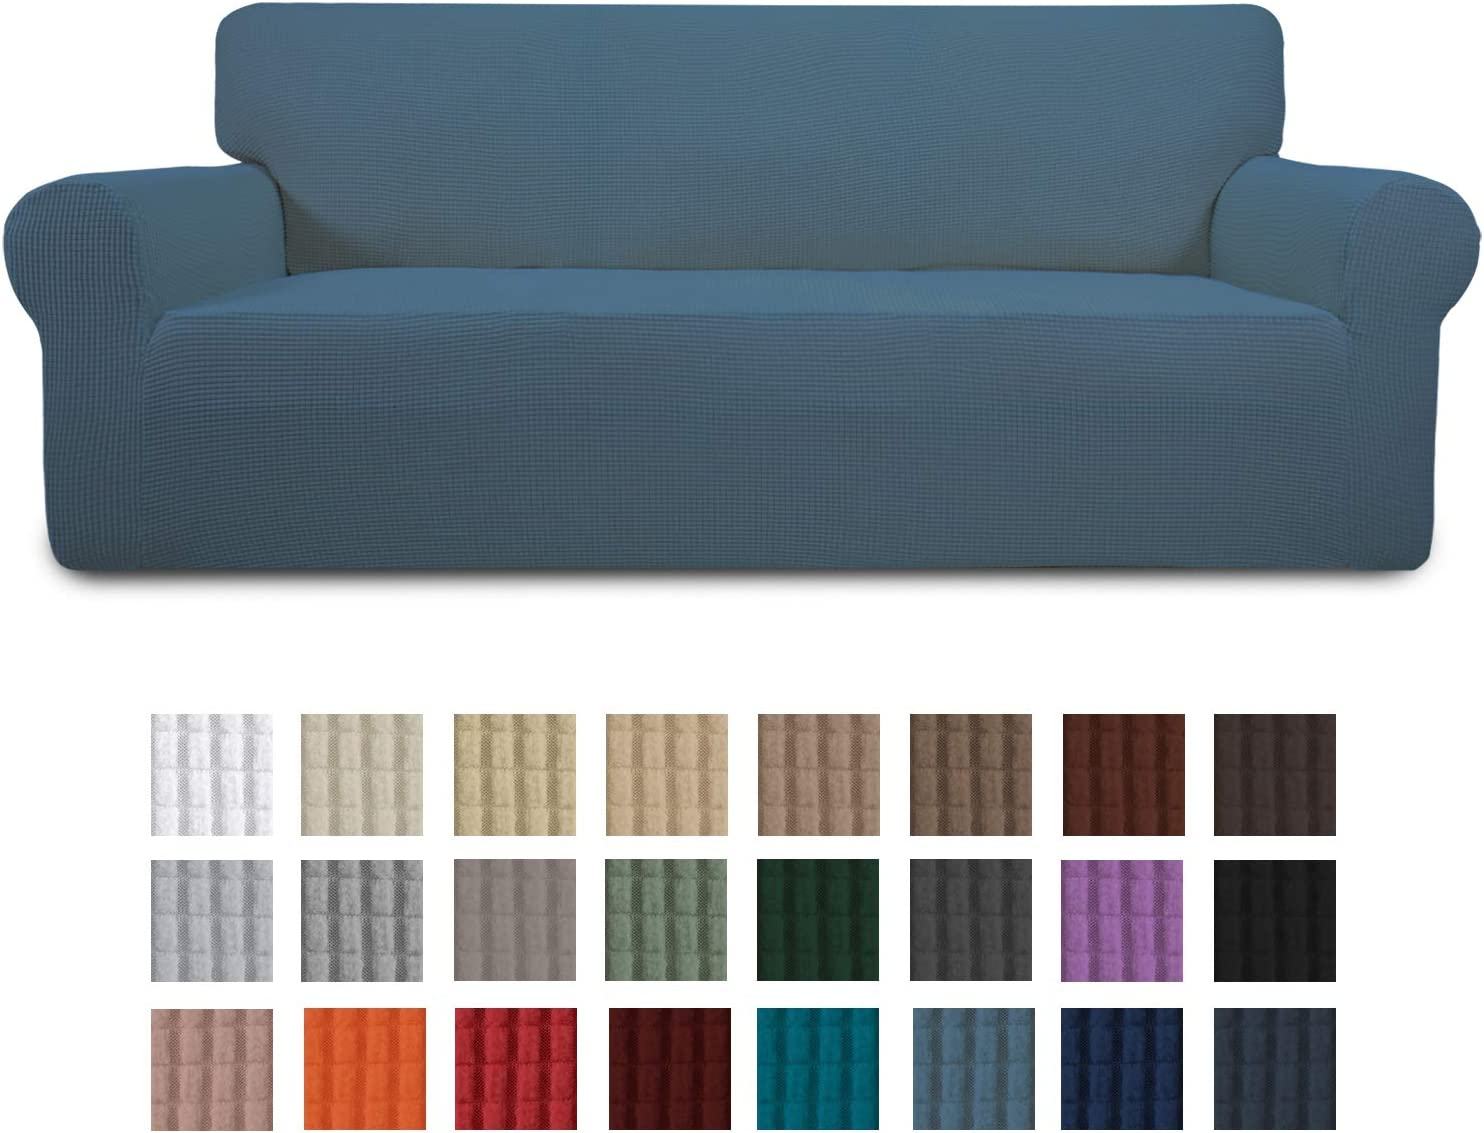 Easy-Going Stretch Oversized Sofa Slipcover 1-Piece Couch Sofa Cover Furniture Protector Soft with Elastic Bottom for Kids, Spandex Jacquard Fabric Small Checks(X Large,Bluestone)